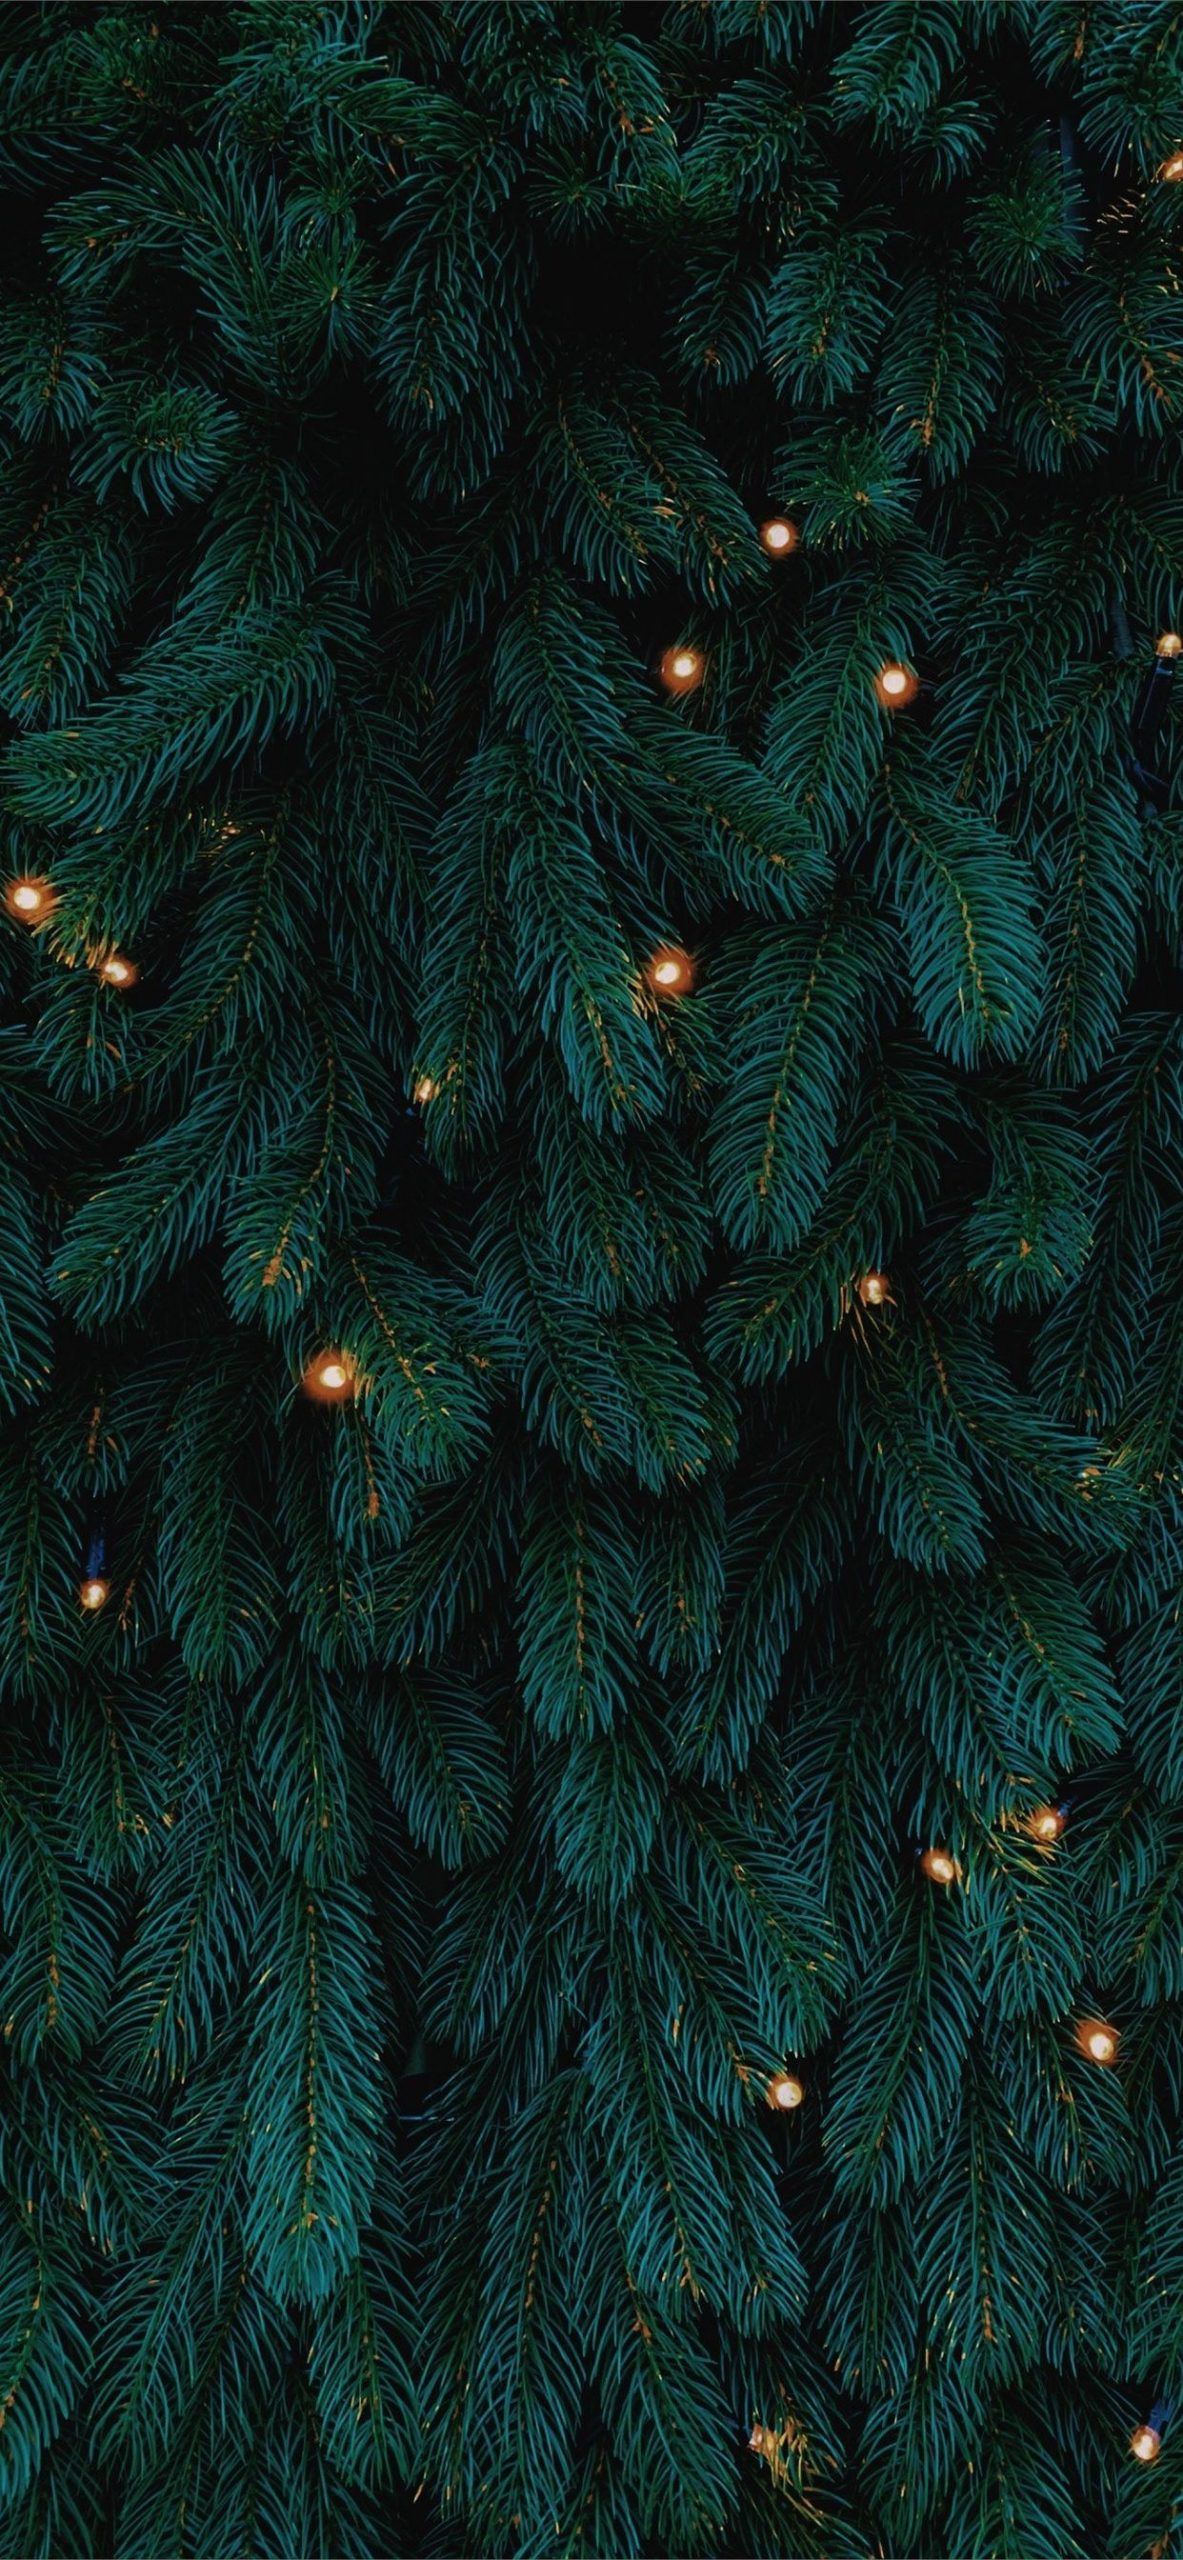 green Christmas tree with lights iphone 11 pro max wallpaper ilikewallpaper 1242x2688